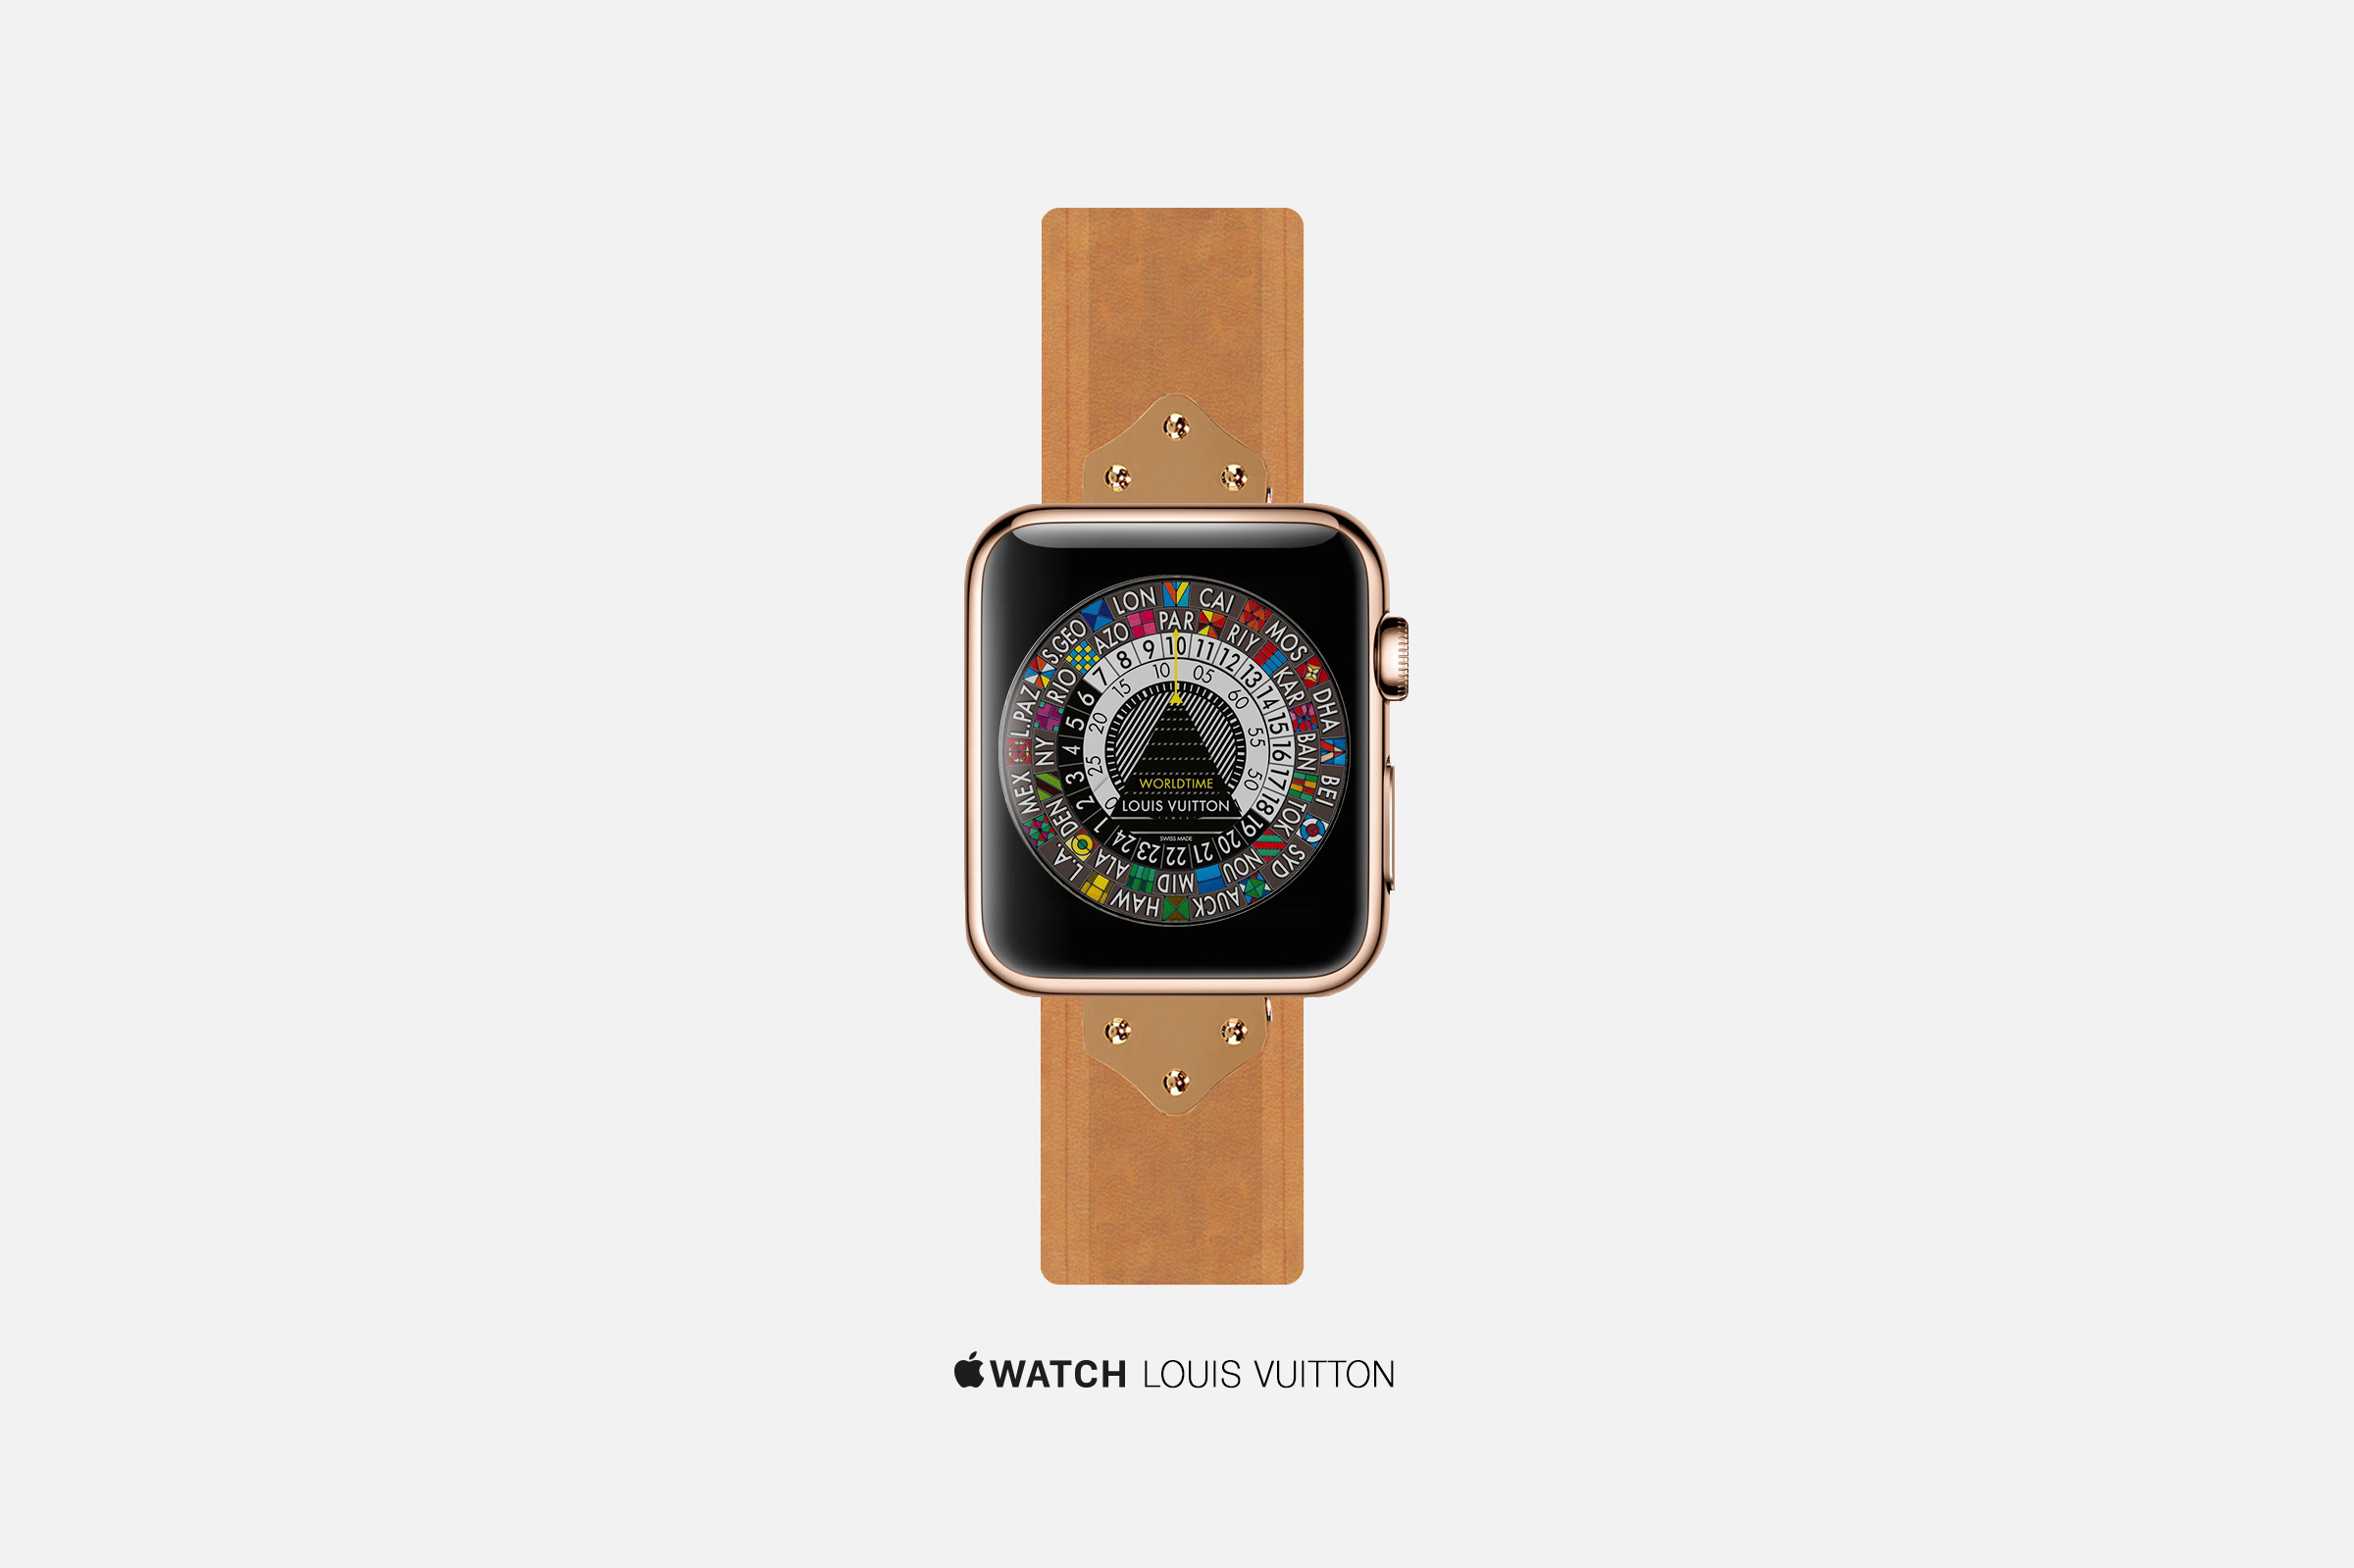 An artist's concept of an Apple Watch by Louis Vuitton.